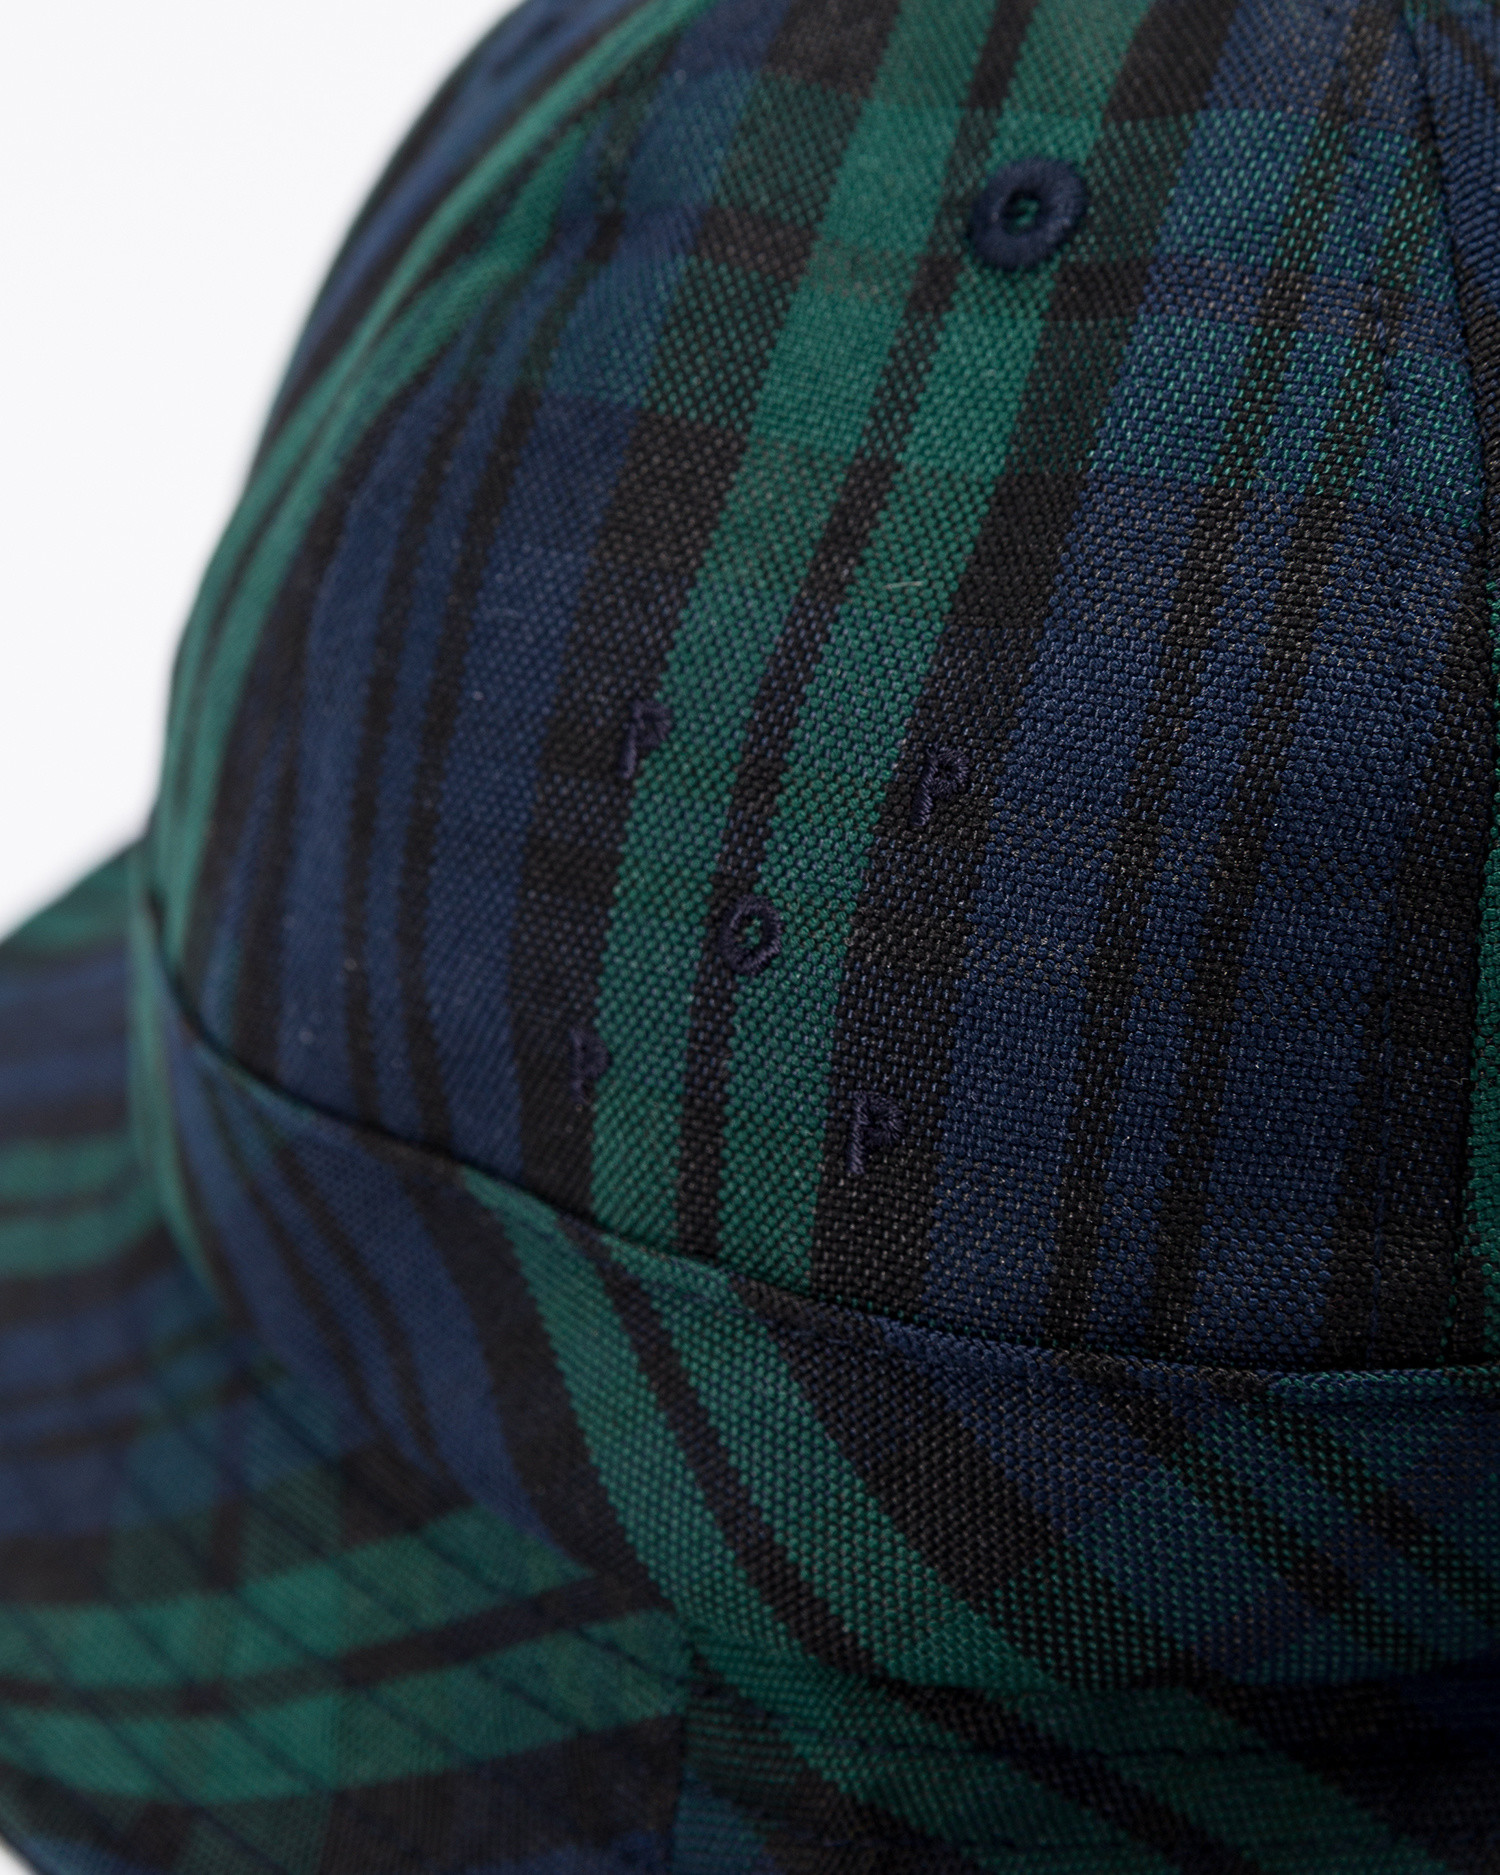 Pop Trading Co bell hat nightwatch plaid